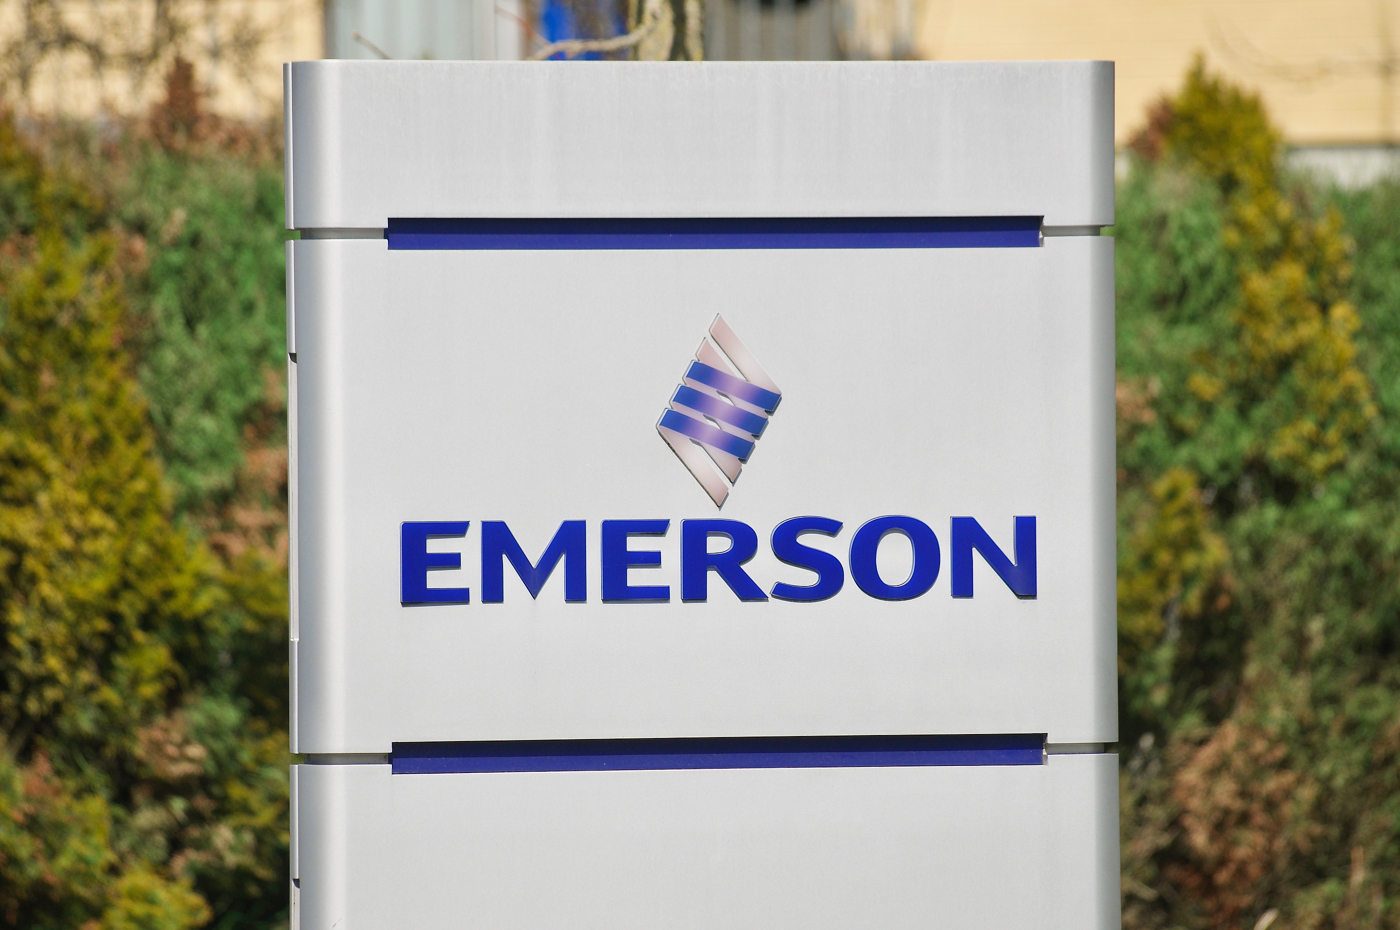 Emerson Electric stock, EMR stock, Electric stocks